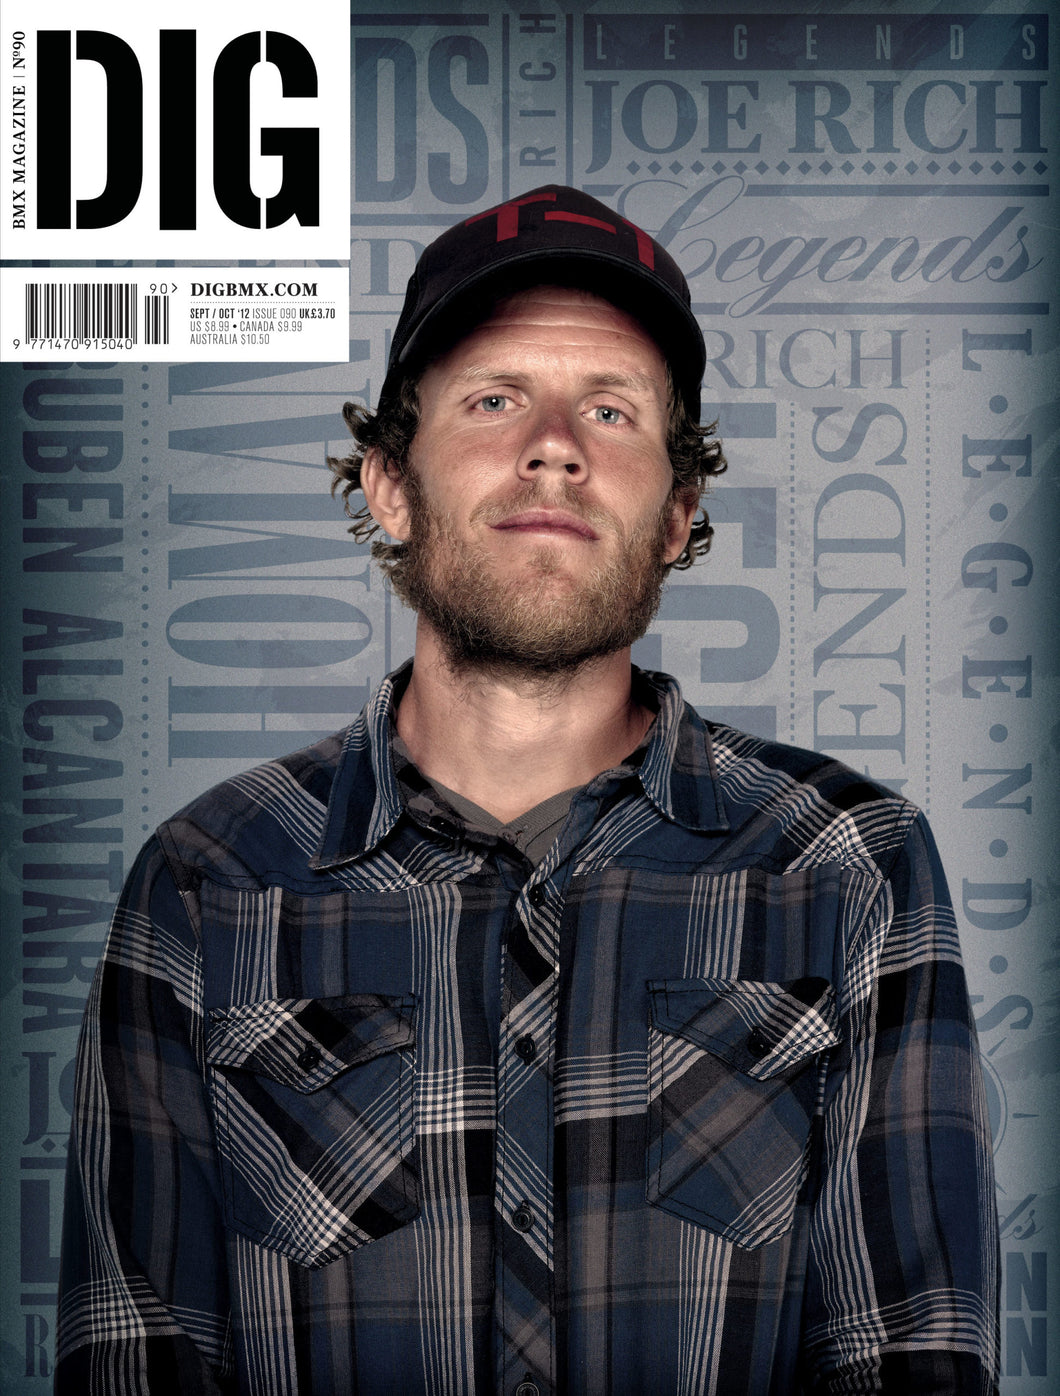 DIG ISSUE 90 - Joe Rich Cover